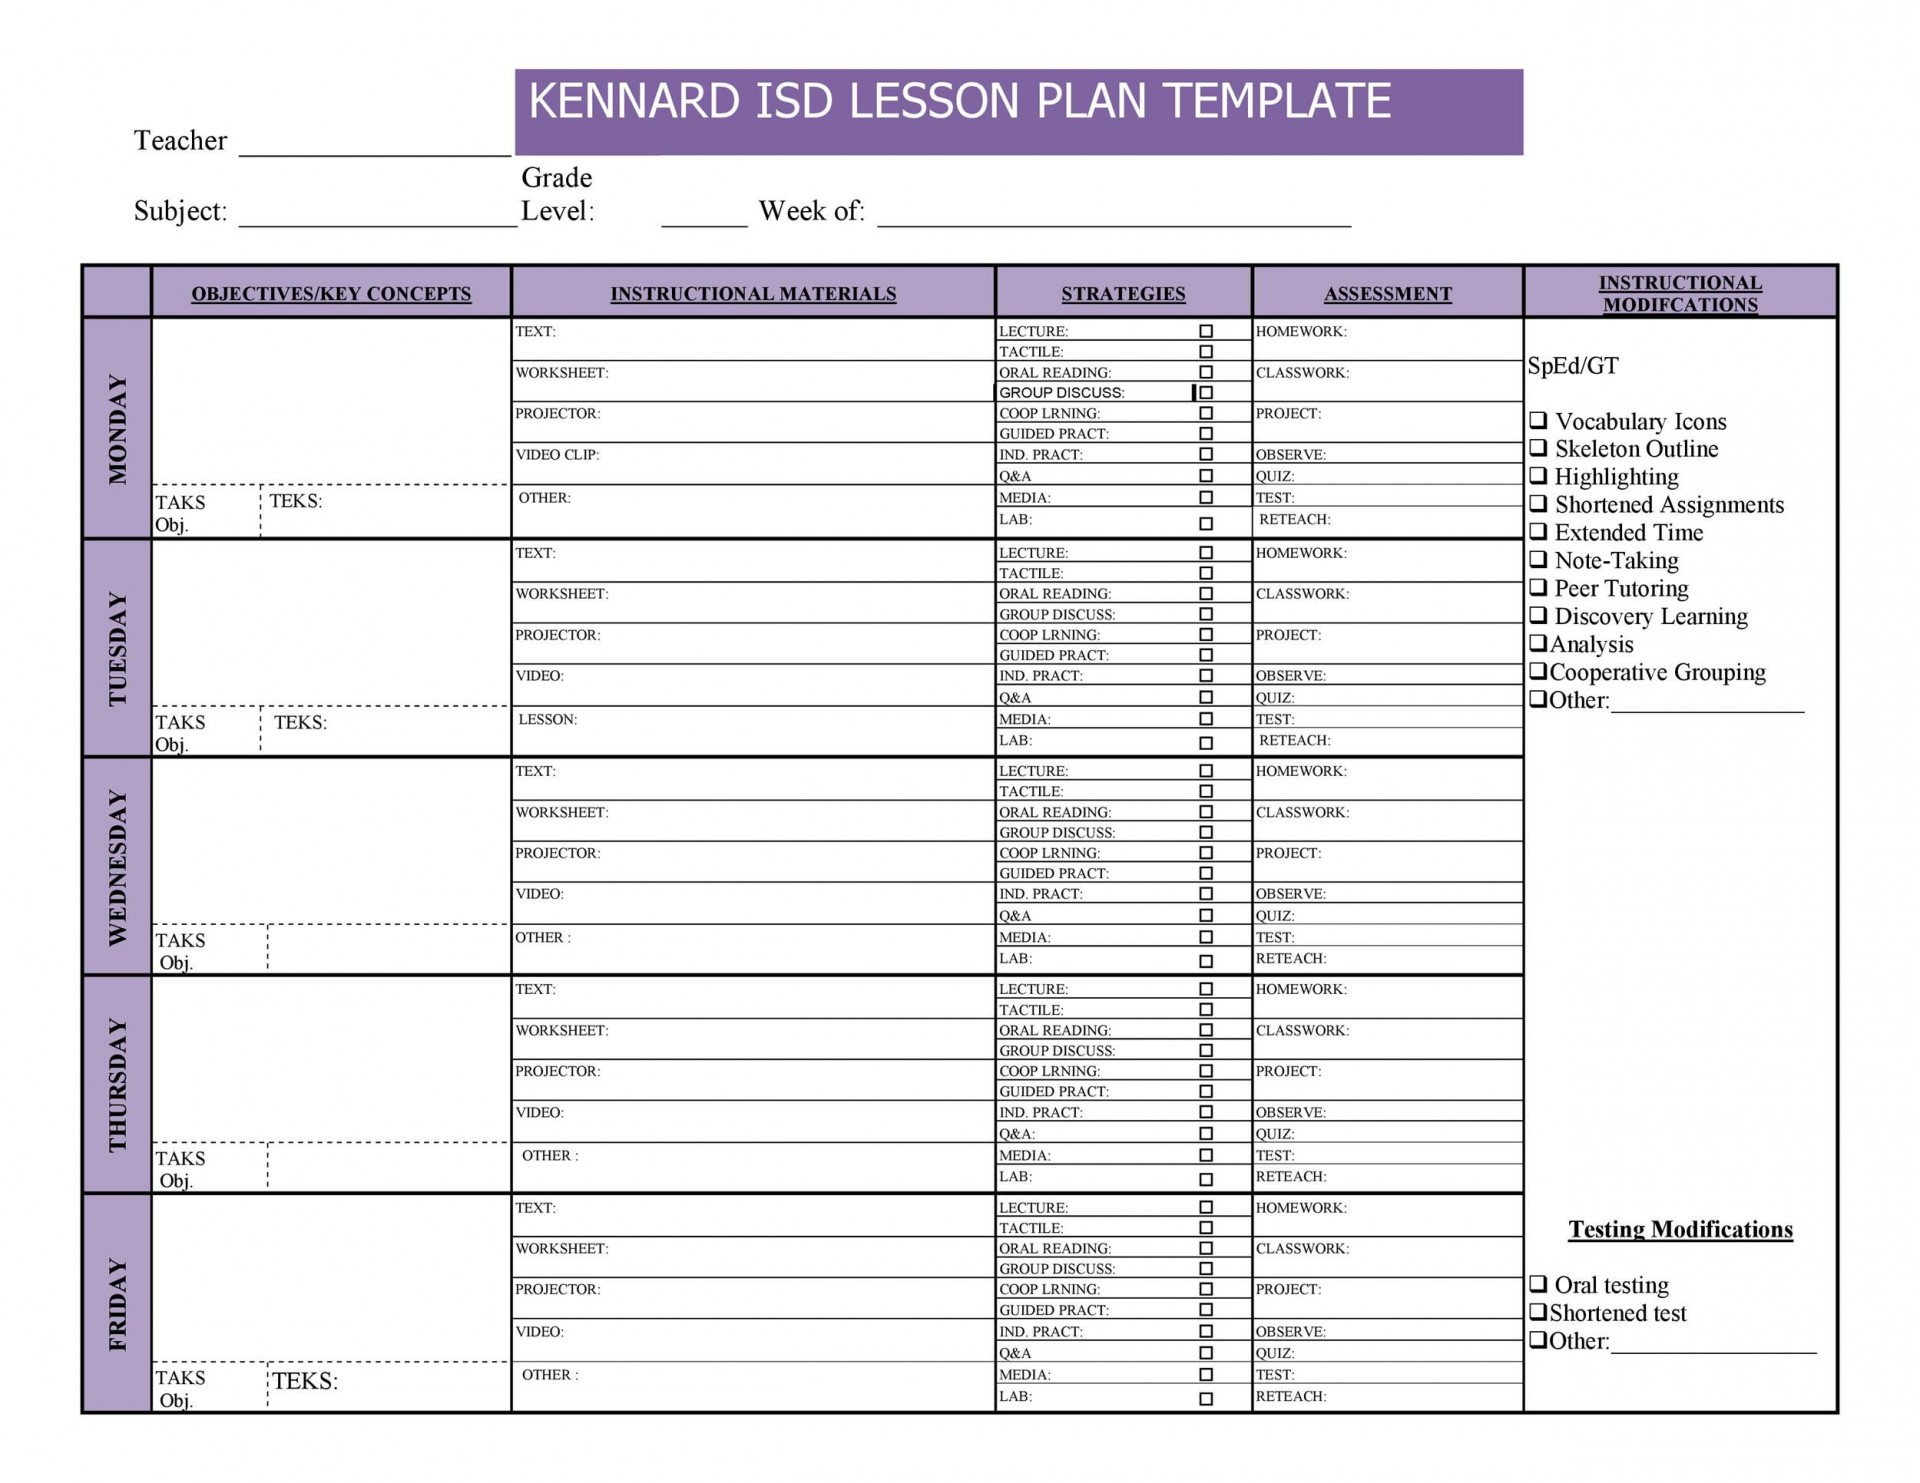 008 Archaicawful Editable Lesson Plan Template Highest Clarity  Templates For Preschool Word Free1920